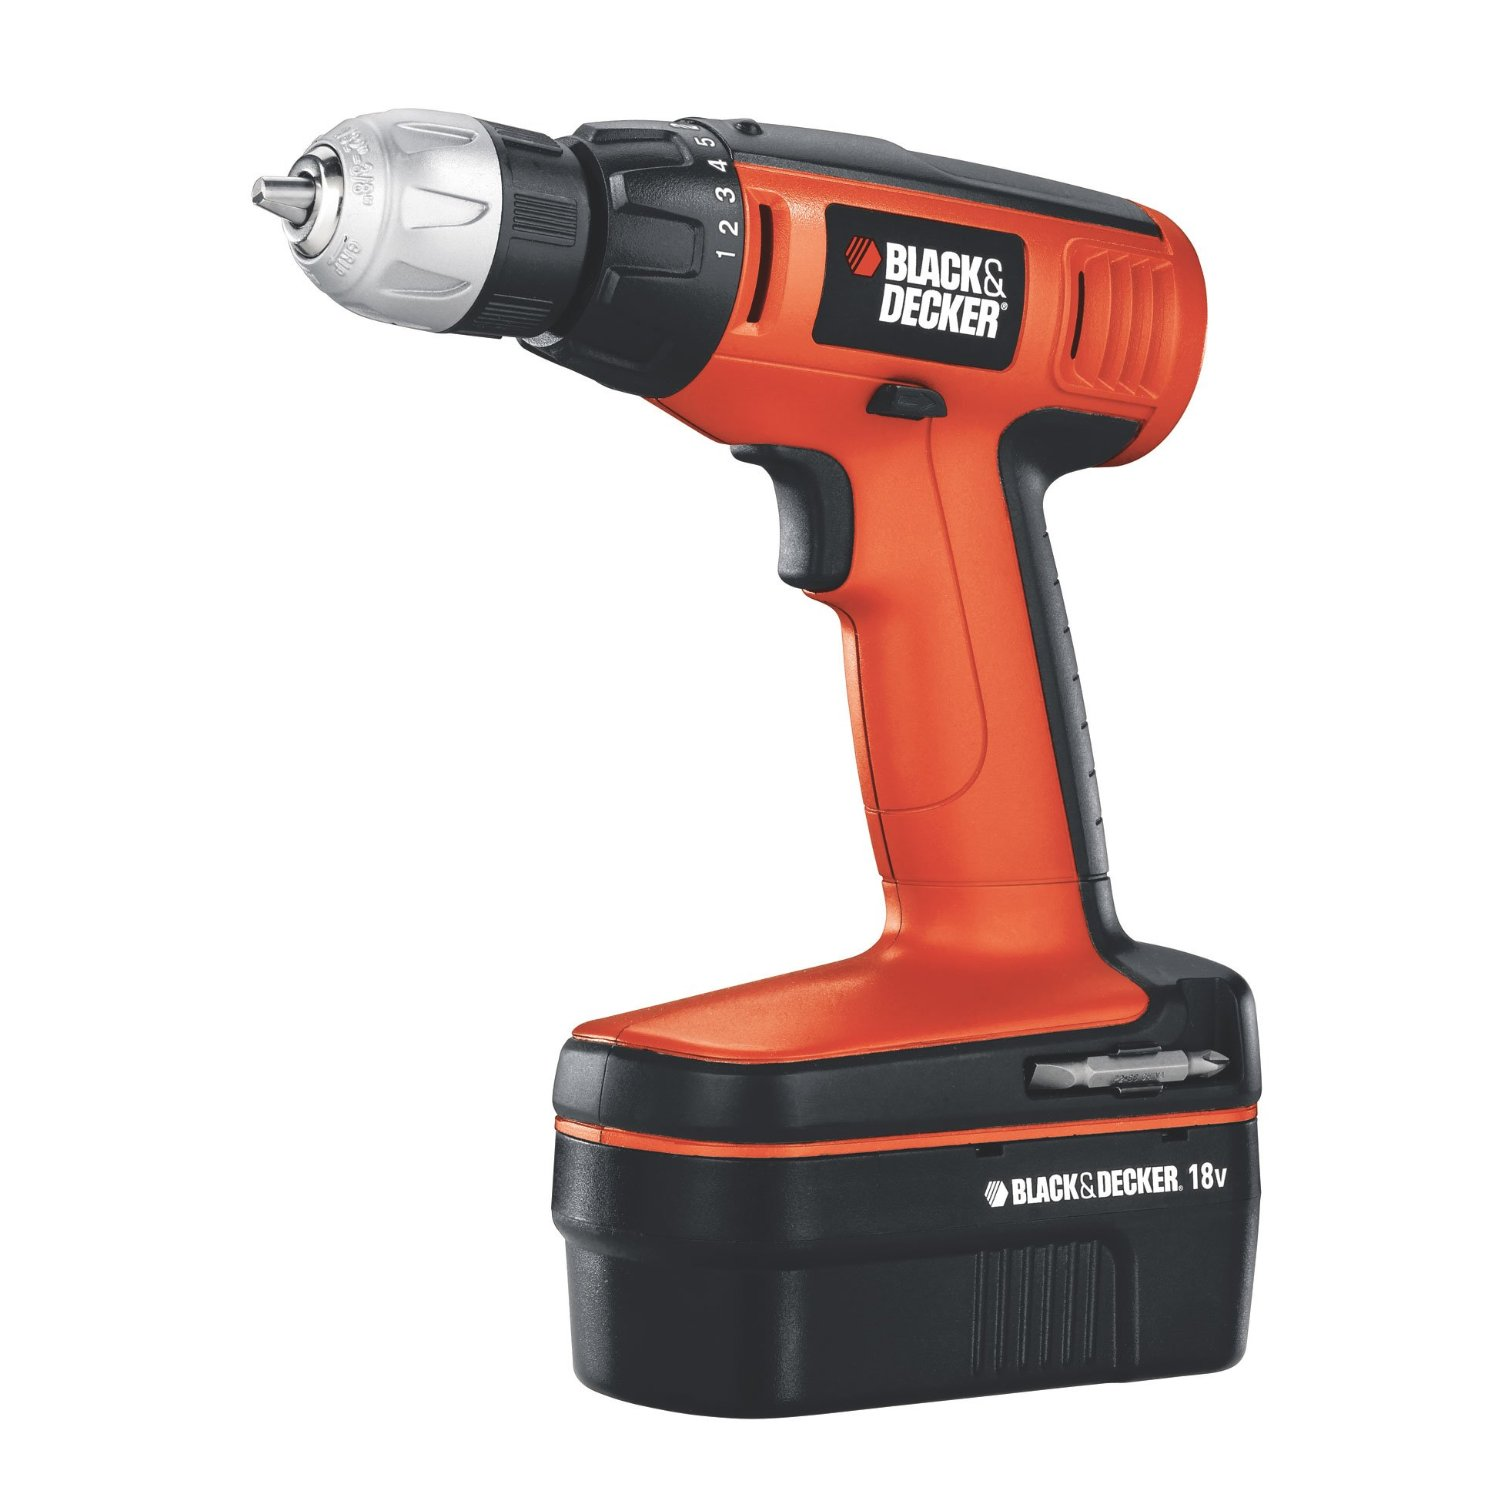 black decker tools accessories save 10 w 50 purchase a frugal friend. Black Bedroom Furniture Sets. Home Design Ideas